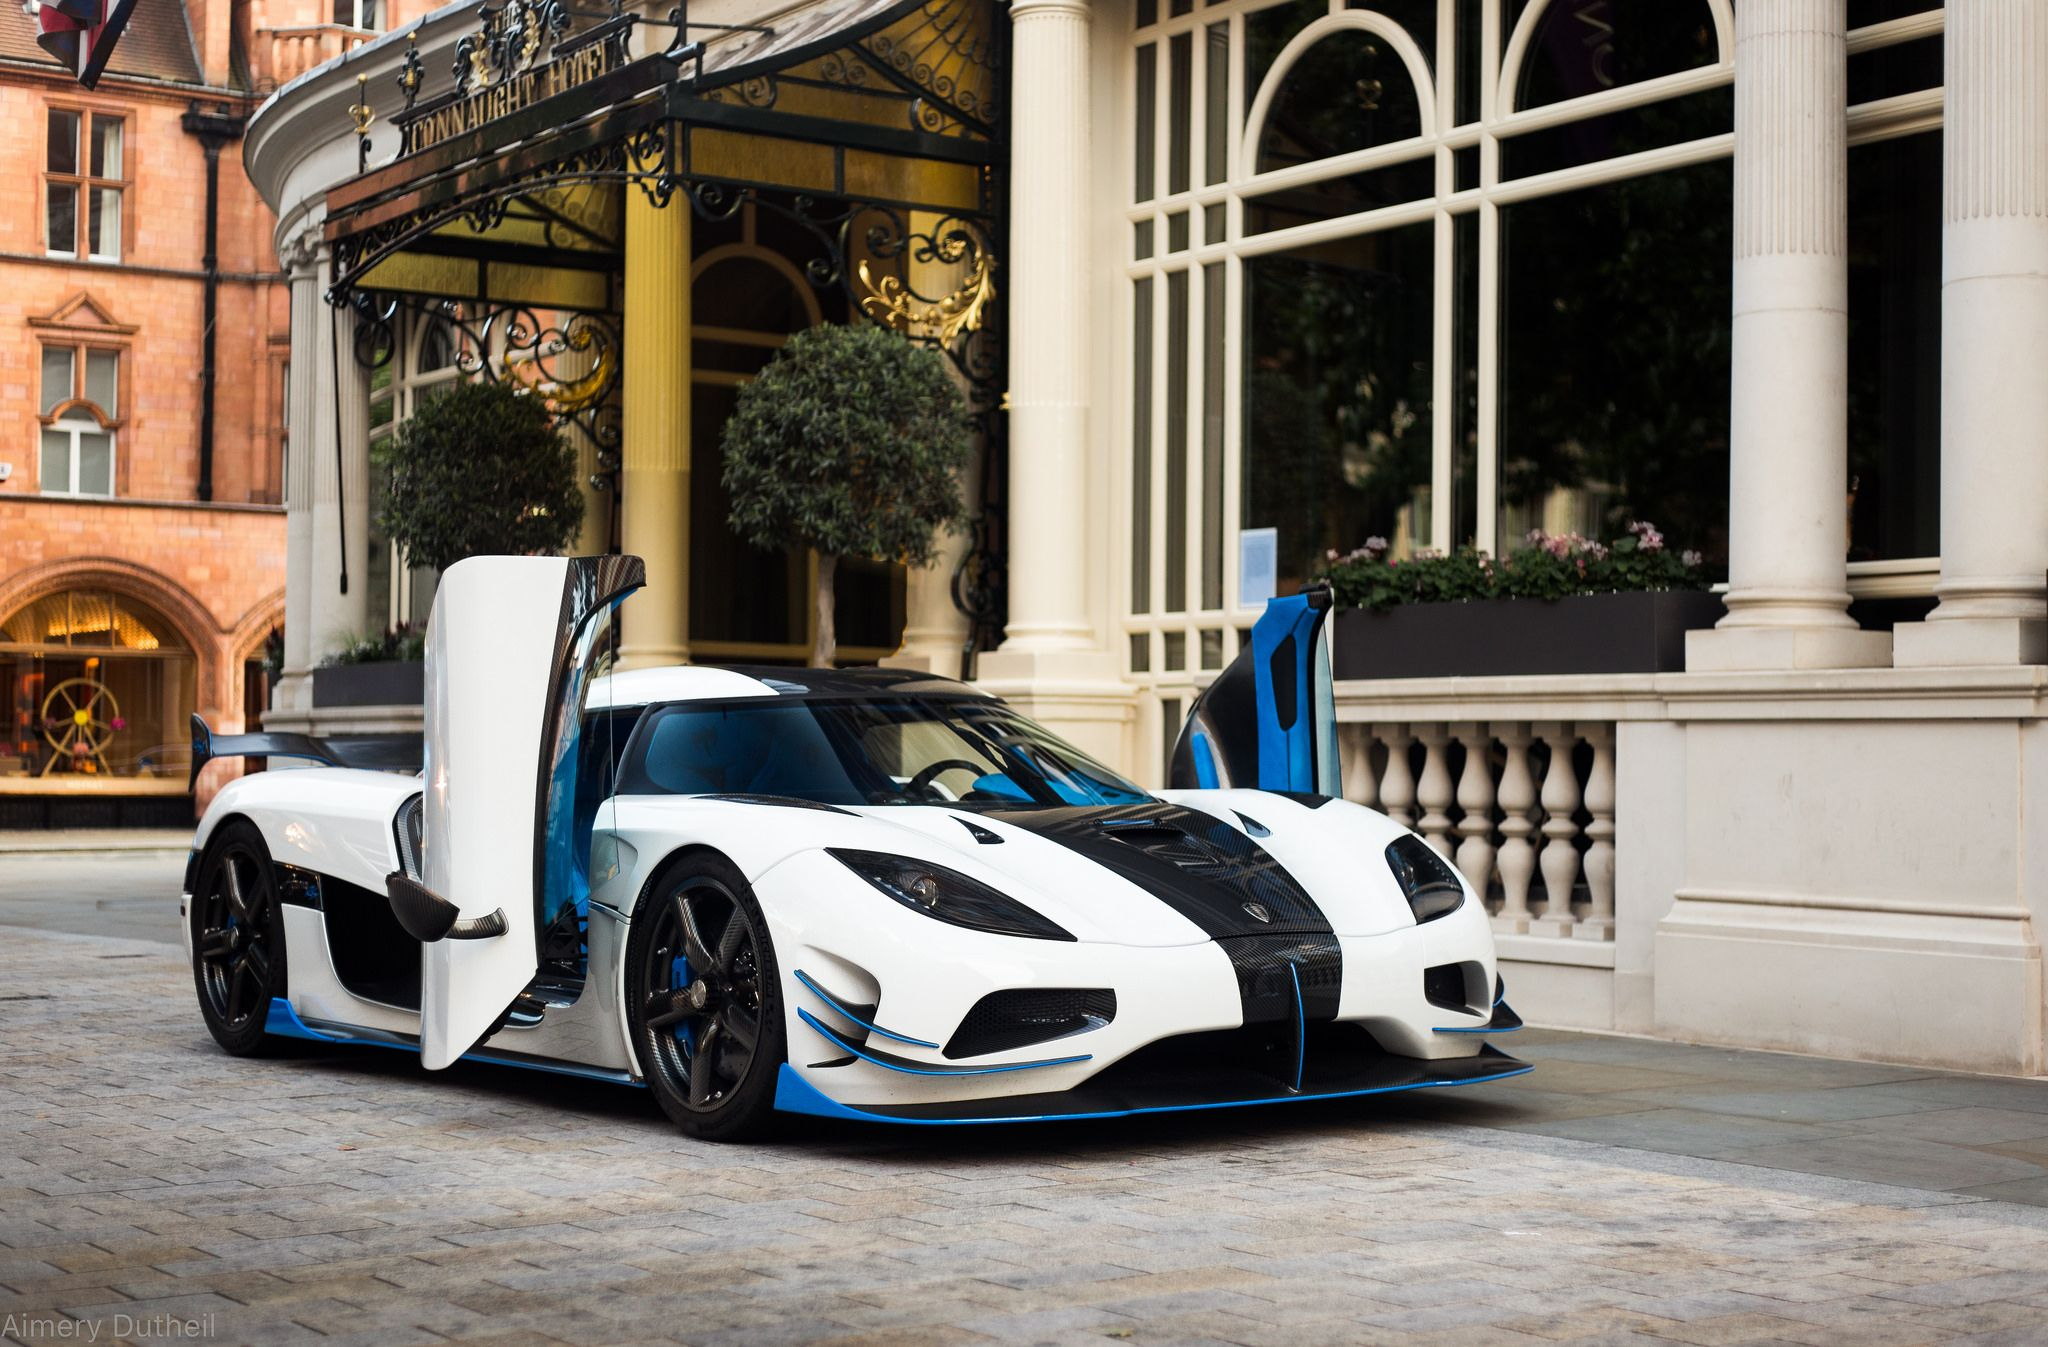 Dihedral Doors Latest Cars Koenigsegg Super Cars